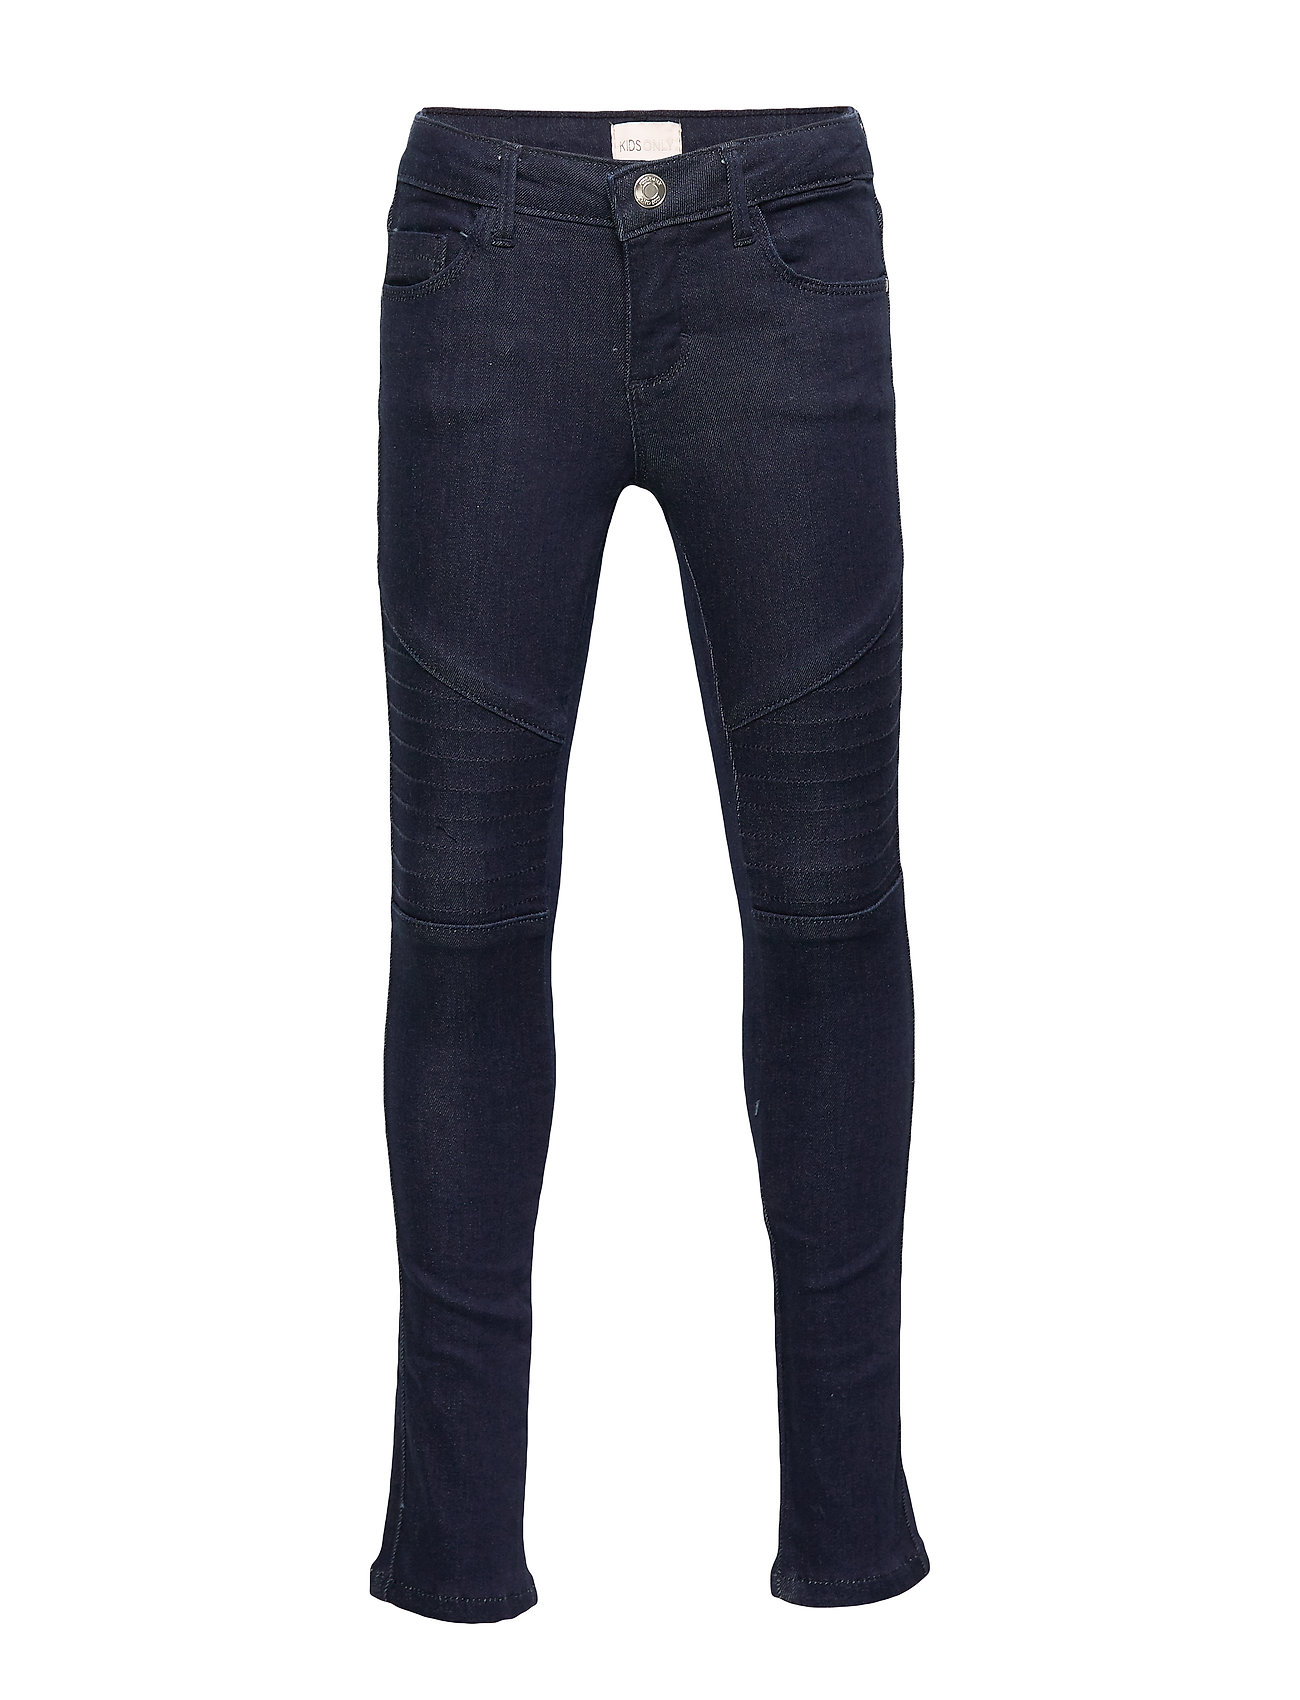 Kids Only KONJAY BIKER JEANS DB - DARK BLUE DENIM